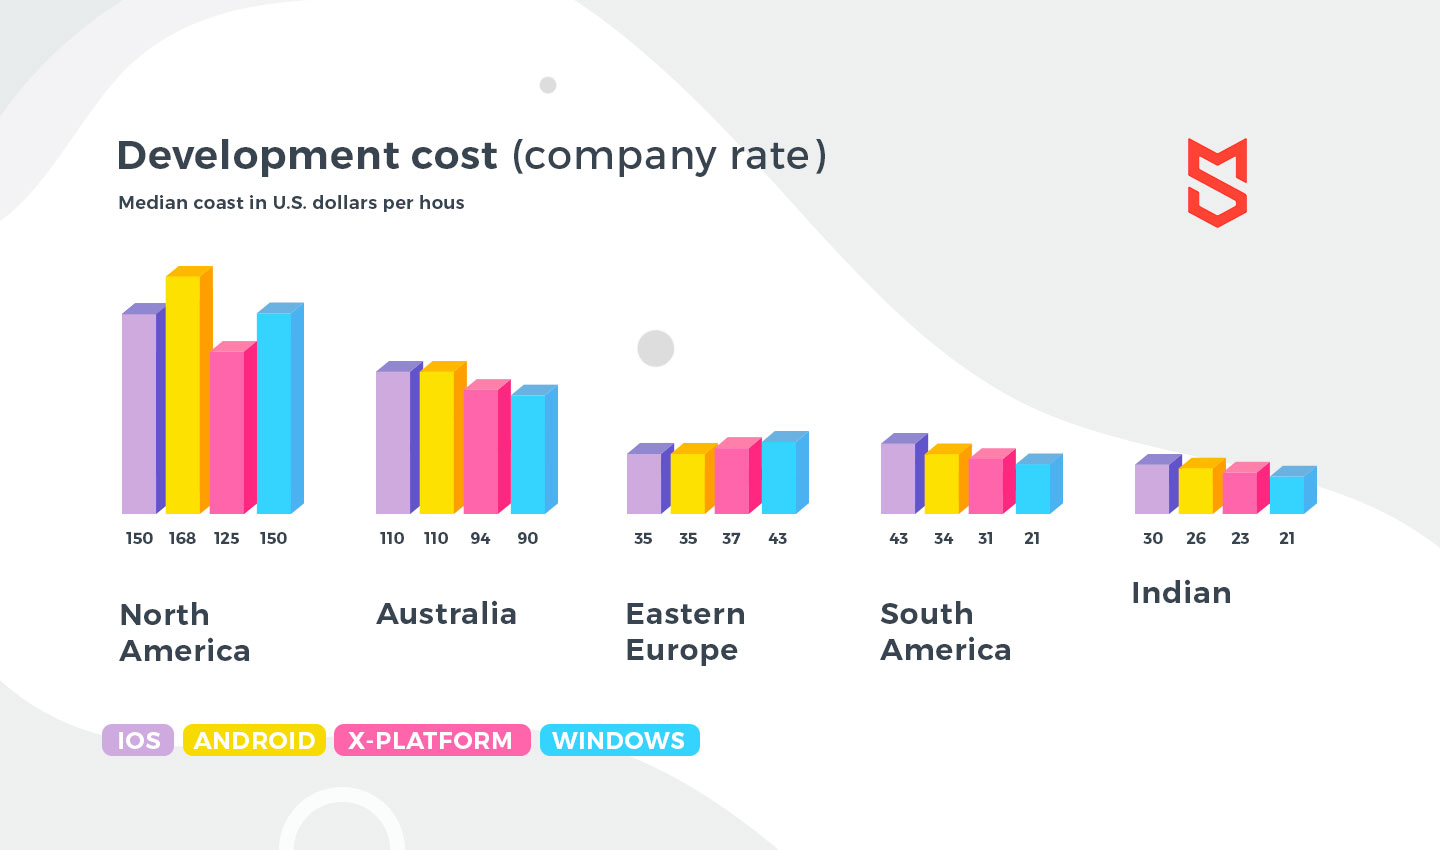 #Development companies rates